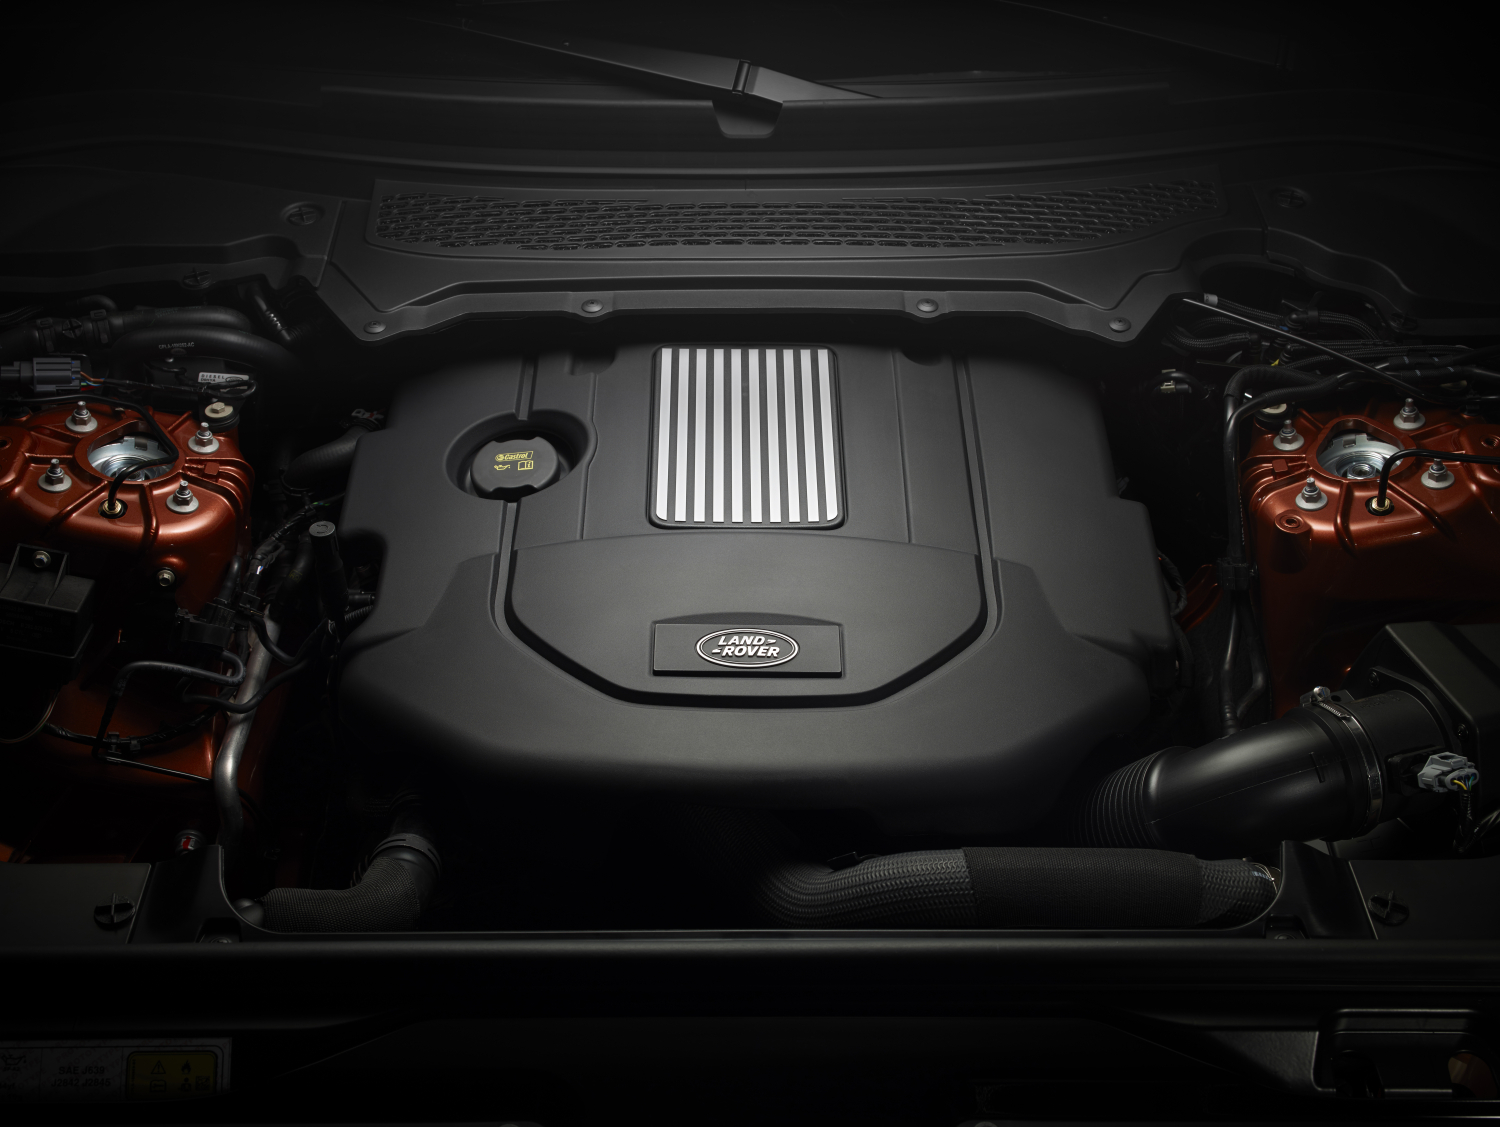 LAND ROVER REVEALS NEW DISCOVERY - ENGINE BAY